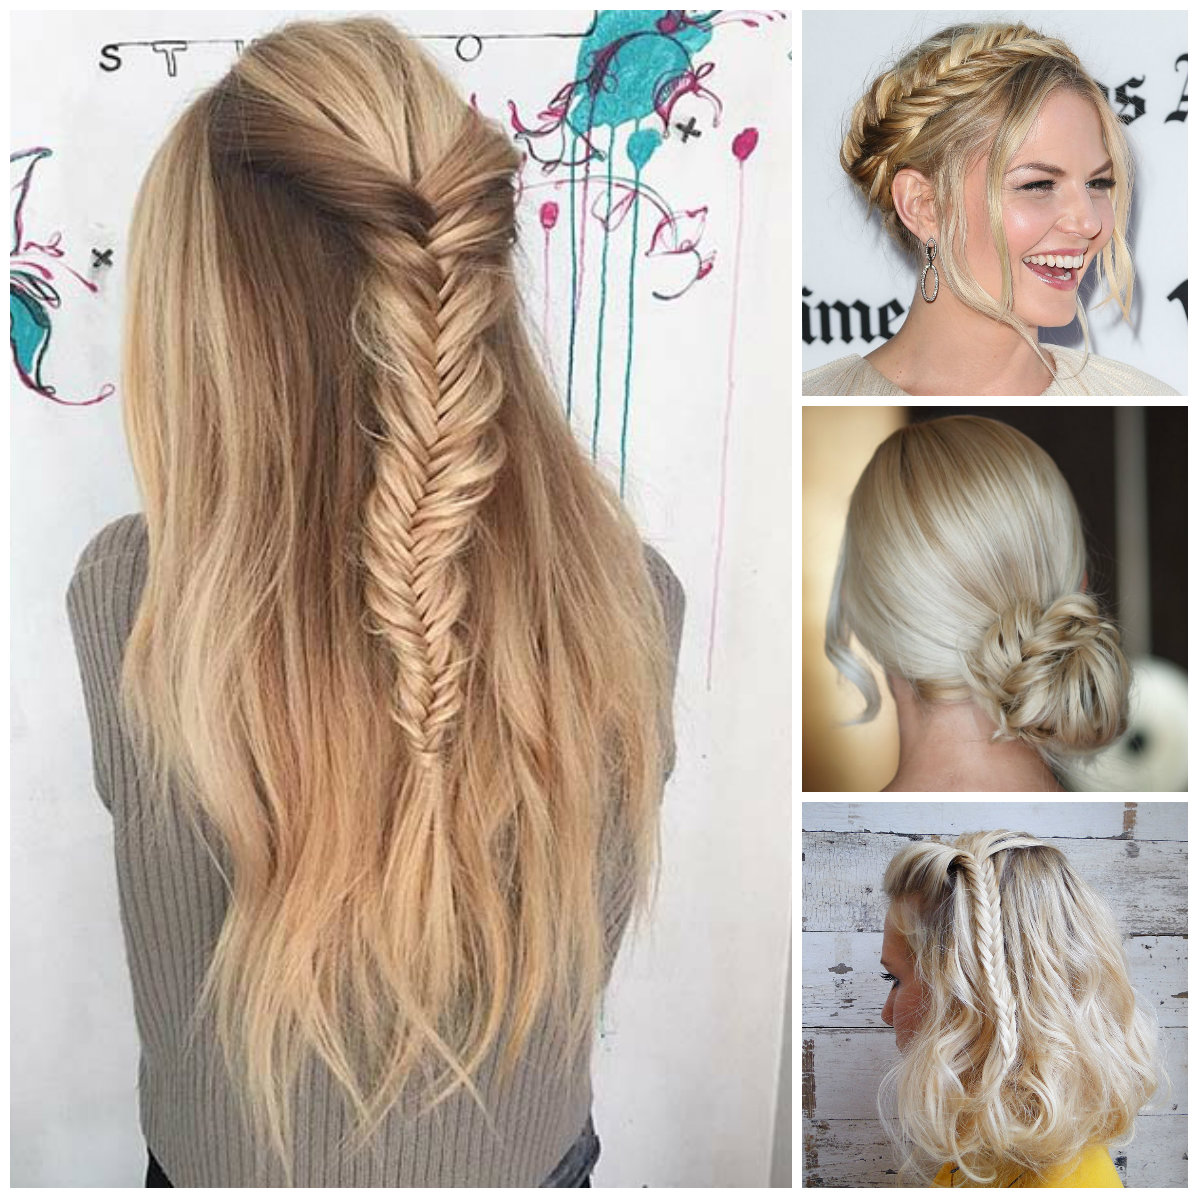 2016 hottest hairstyles with fishtail braids | 2017 haircuts